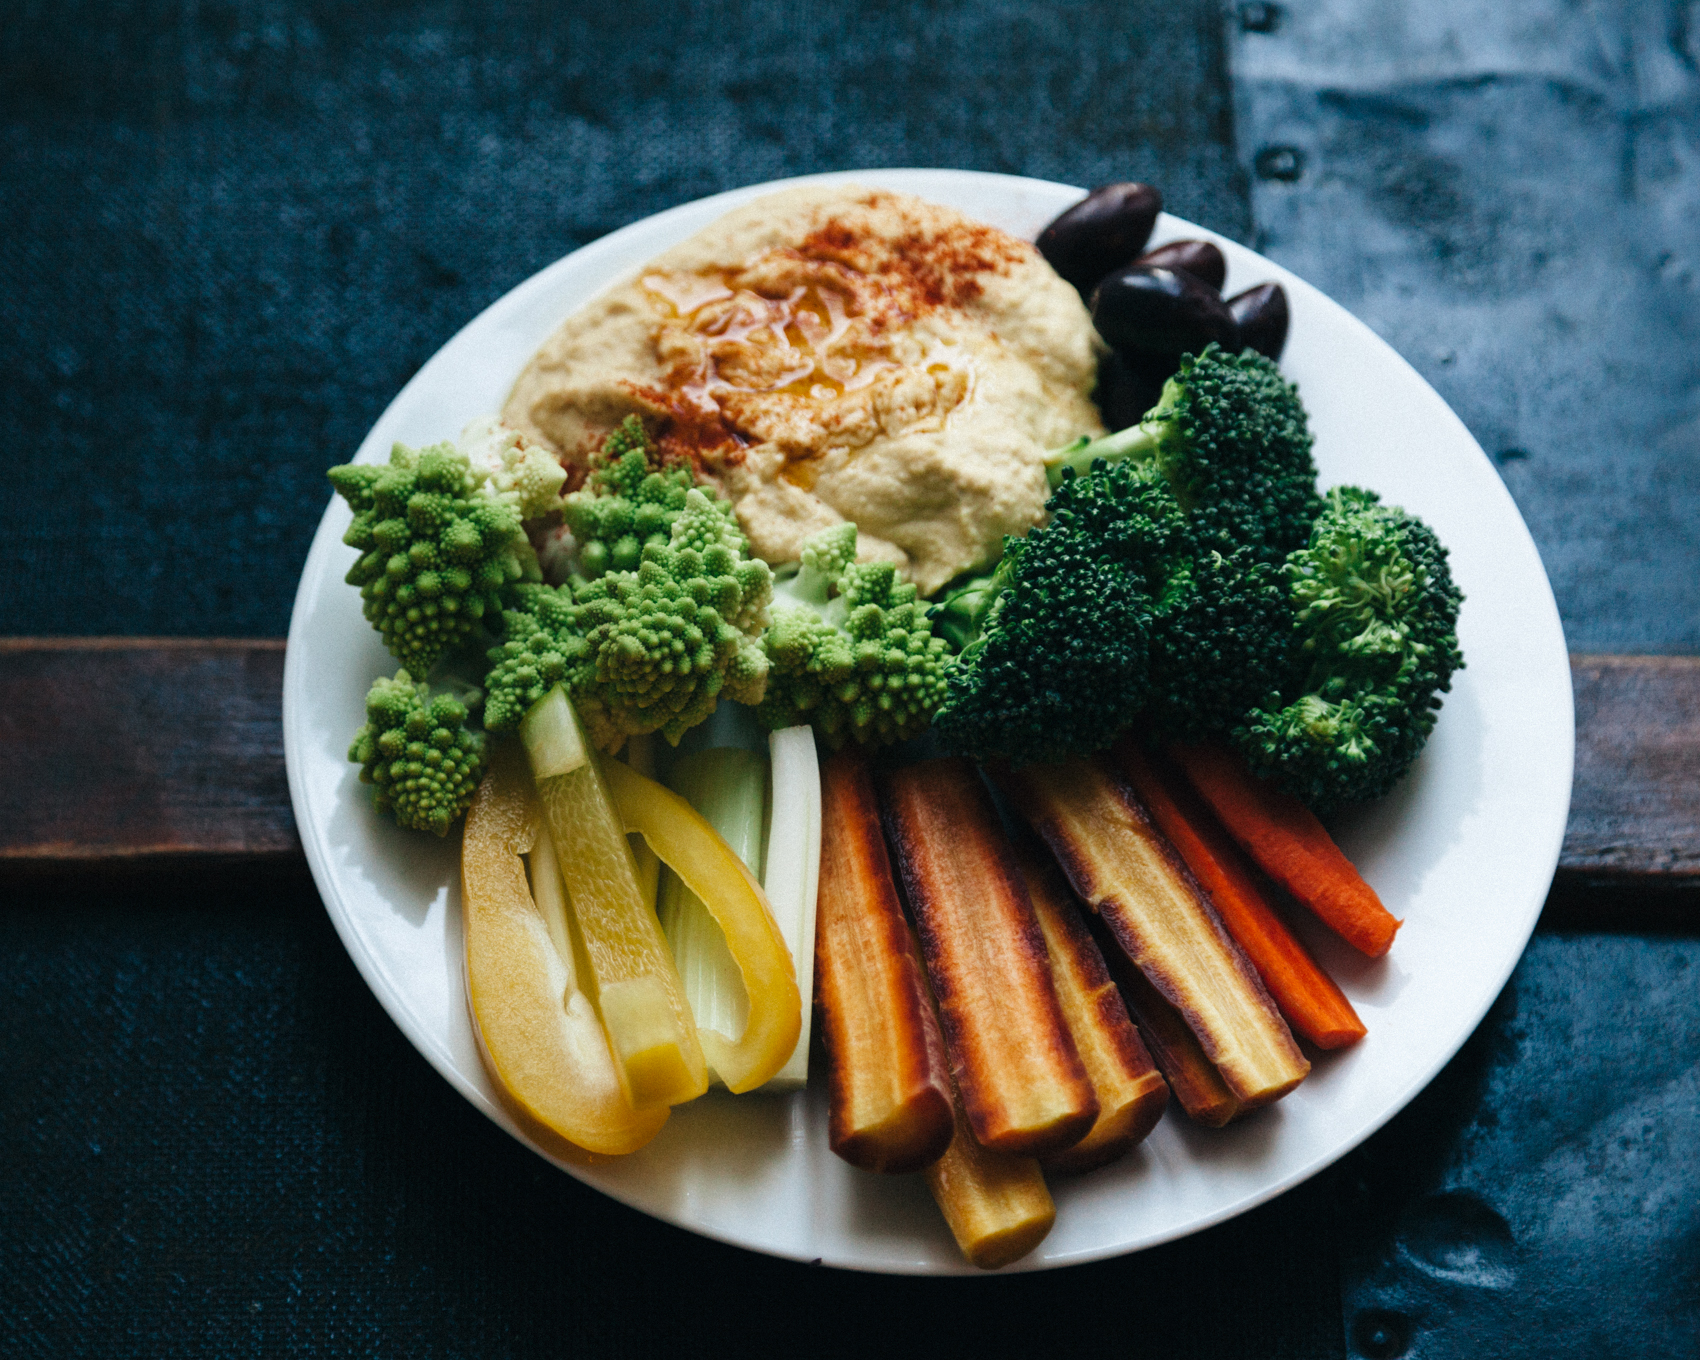 Roasted red pepper hummus garnished with a dollop of olive oil and a sprinkling of paprika, with a side of kalamata olives, romanesco, yellow peppers, celery, carrots and broccoli.